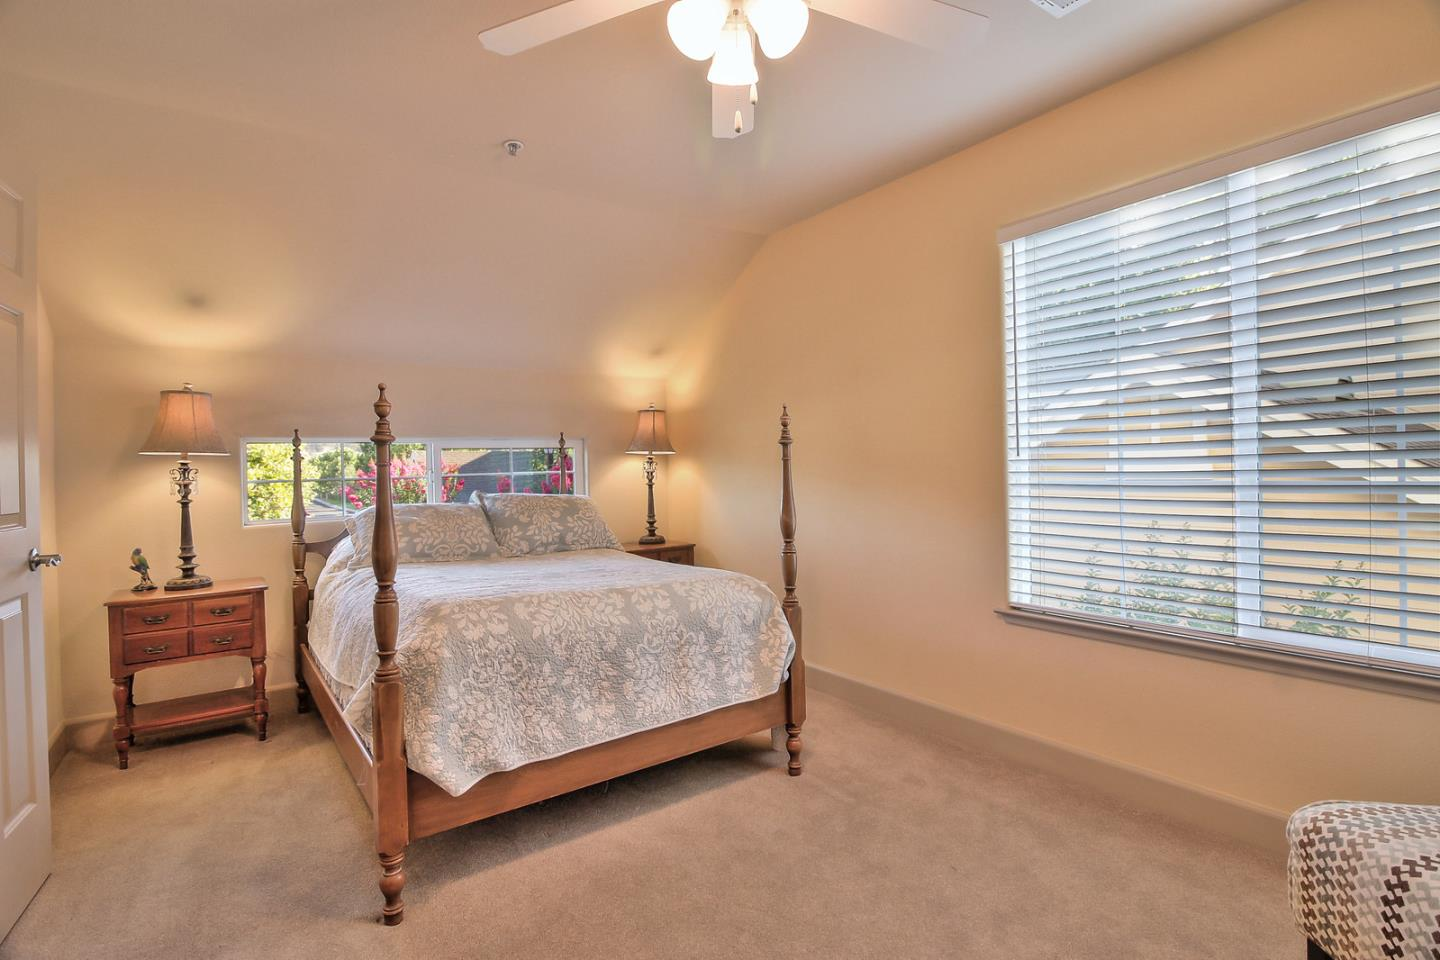 Additional photo for property listing at 7711 Isabella Way 7711 Isabella Way Gilroy, Kalifornien 95020 Vereinigte Staaten